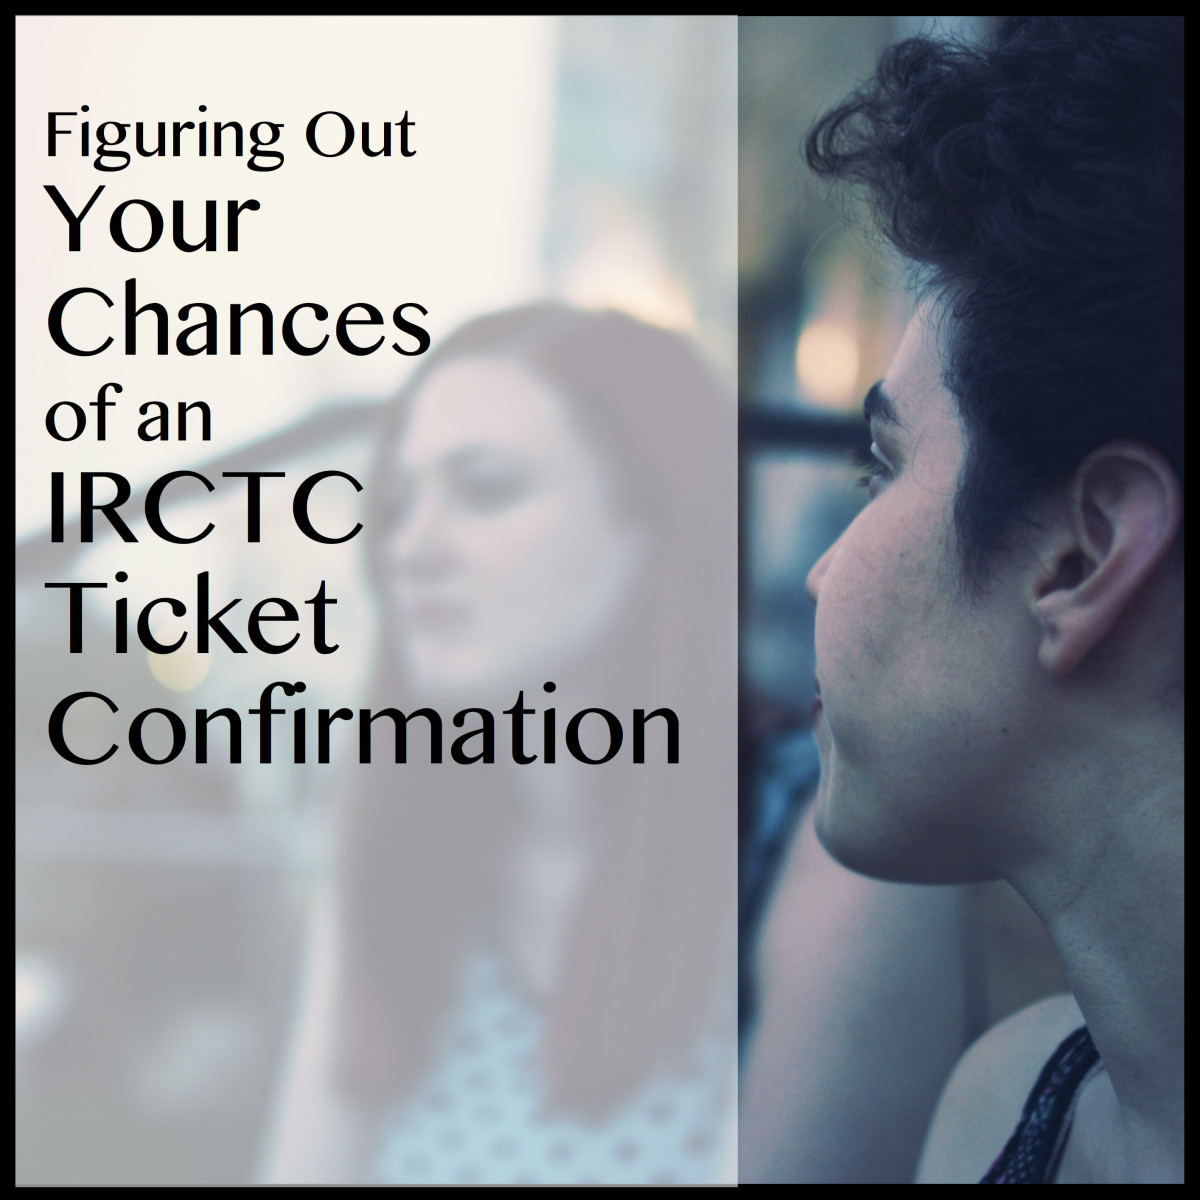 Understand the waiting lists and how to predict your chance of getting a confirmed seat.